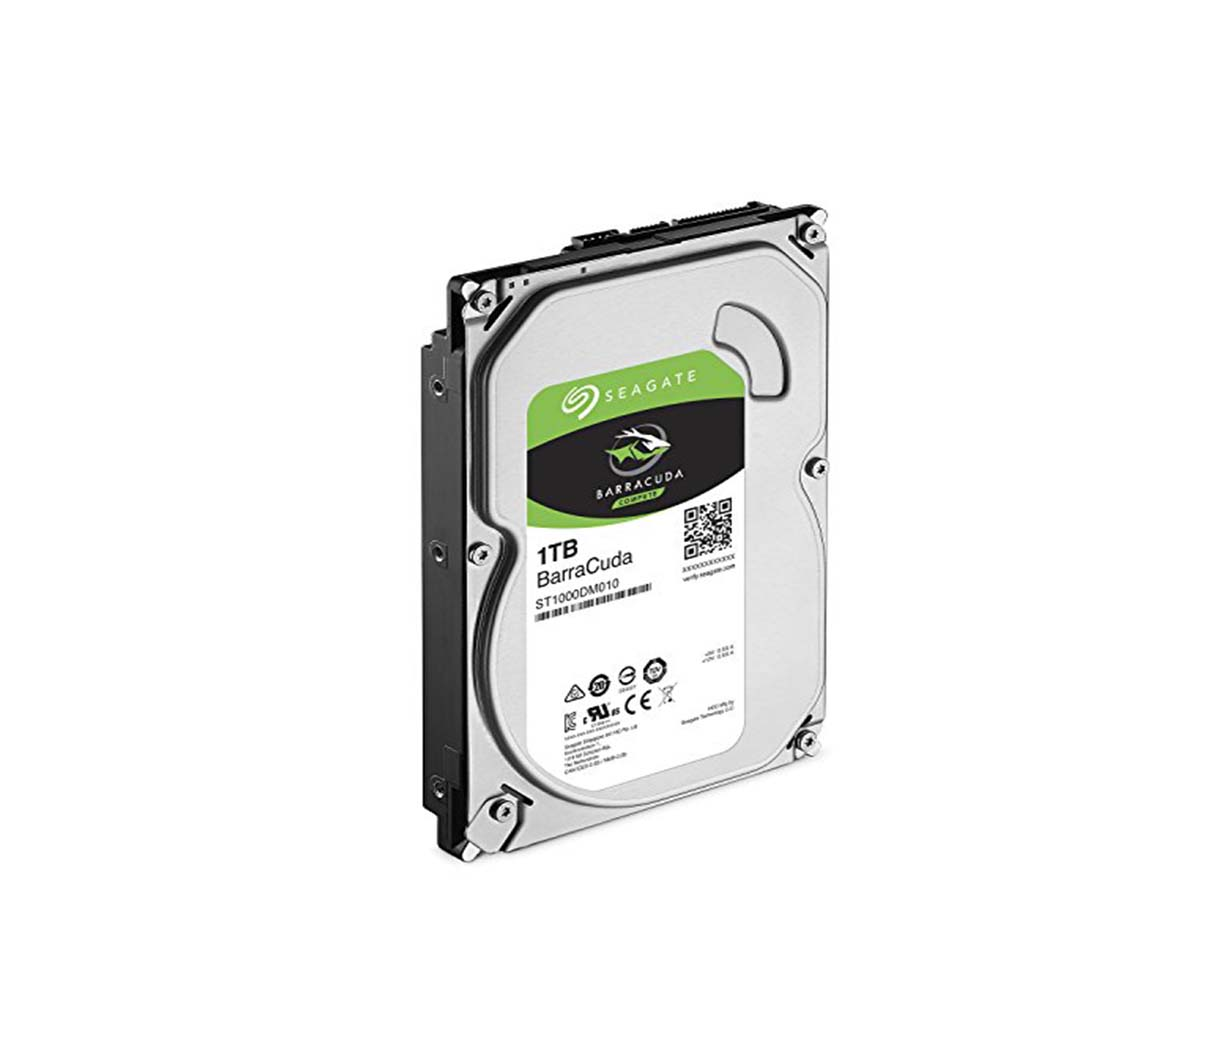 HDD SEAGATE 1000GB (1TB) BARRACUDA 3.5″ SATA 3 7200RPM